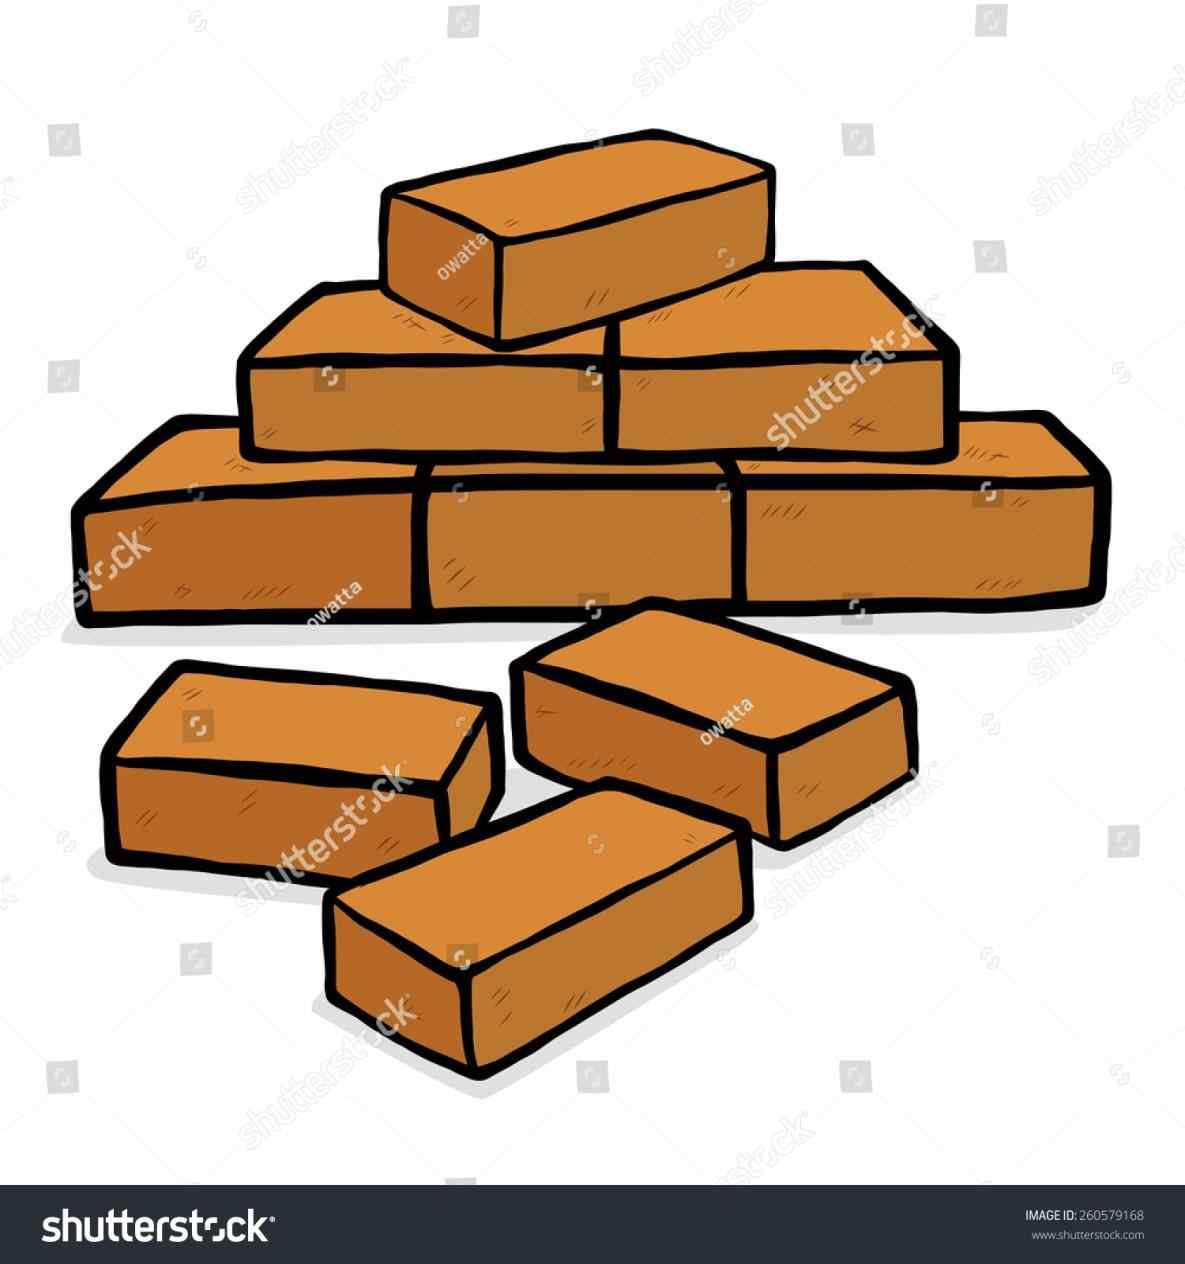 More about pile of. Brick clipart